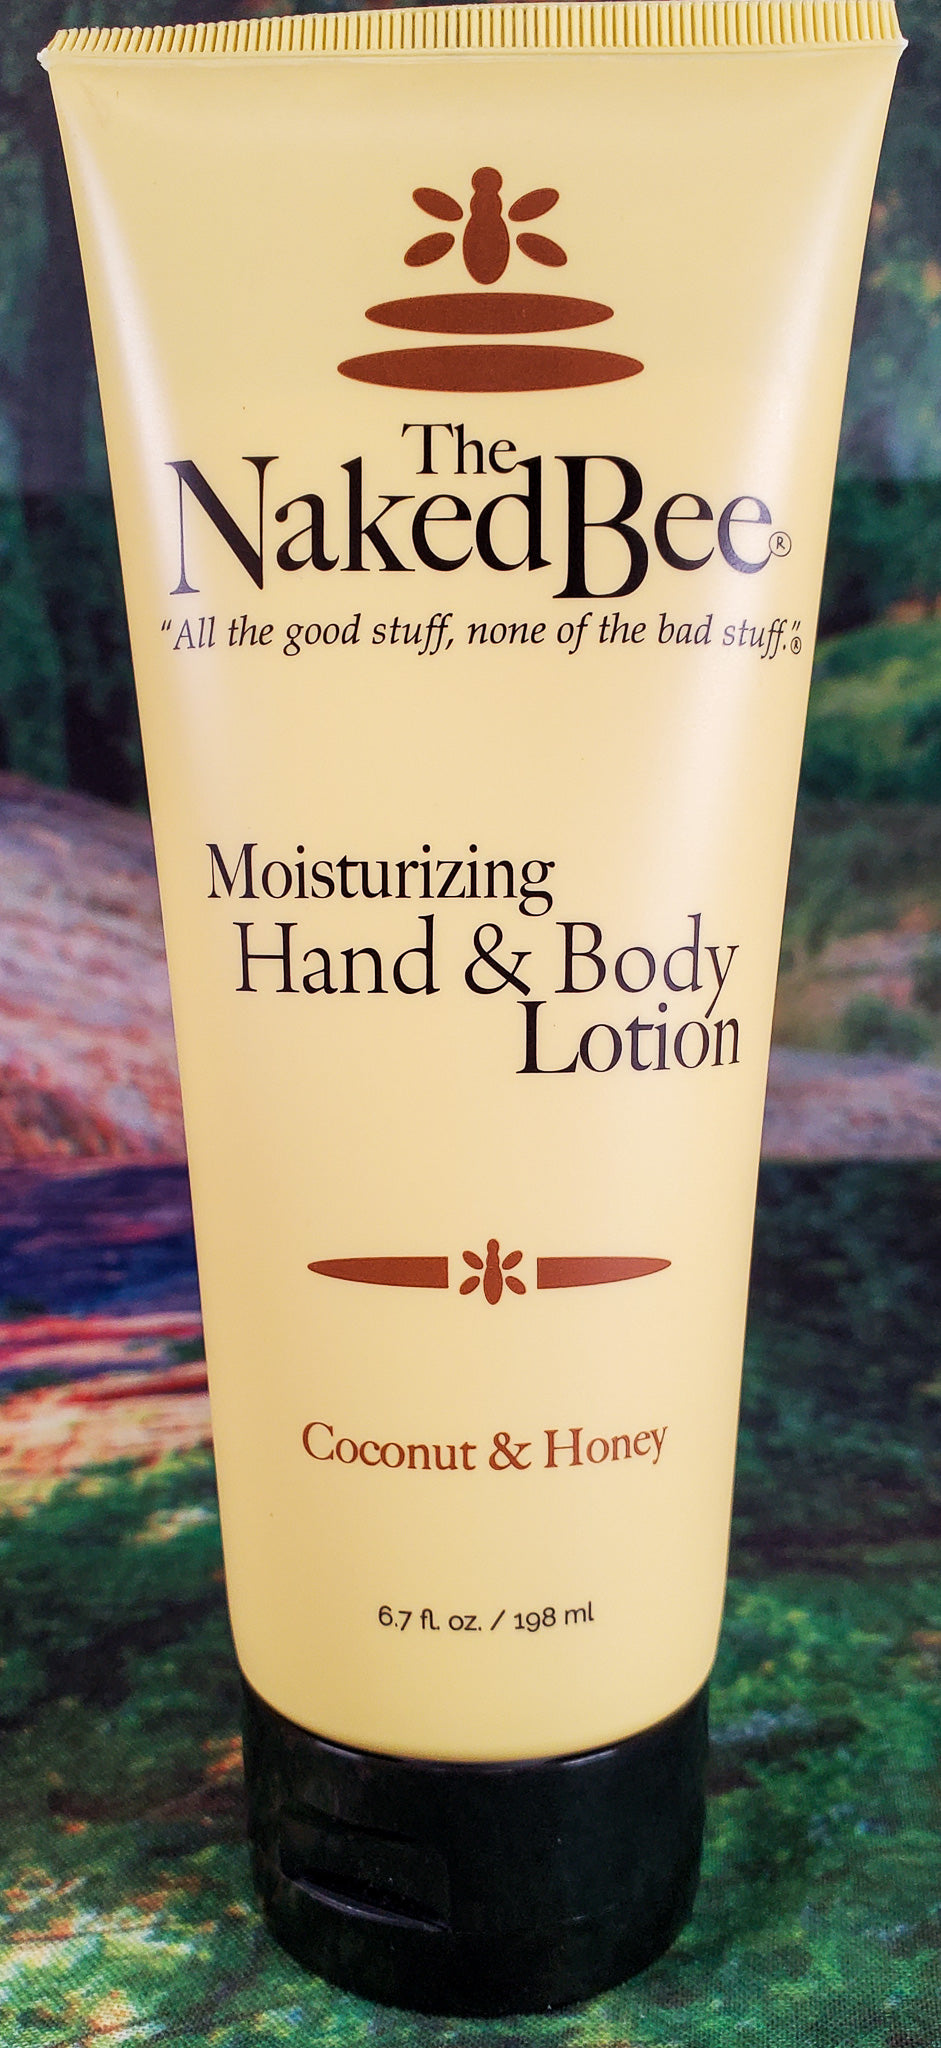 Hand & Body Lotion - Coconut & Honey